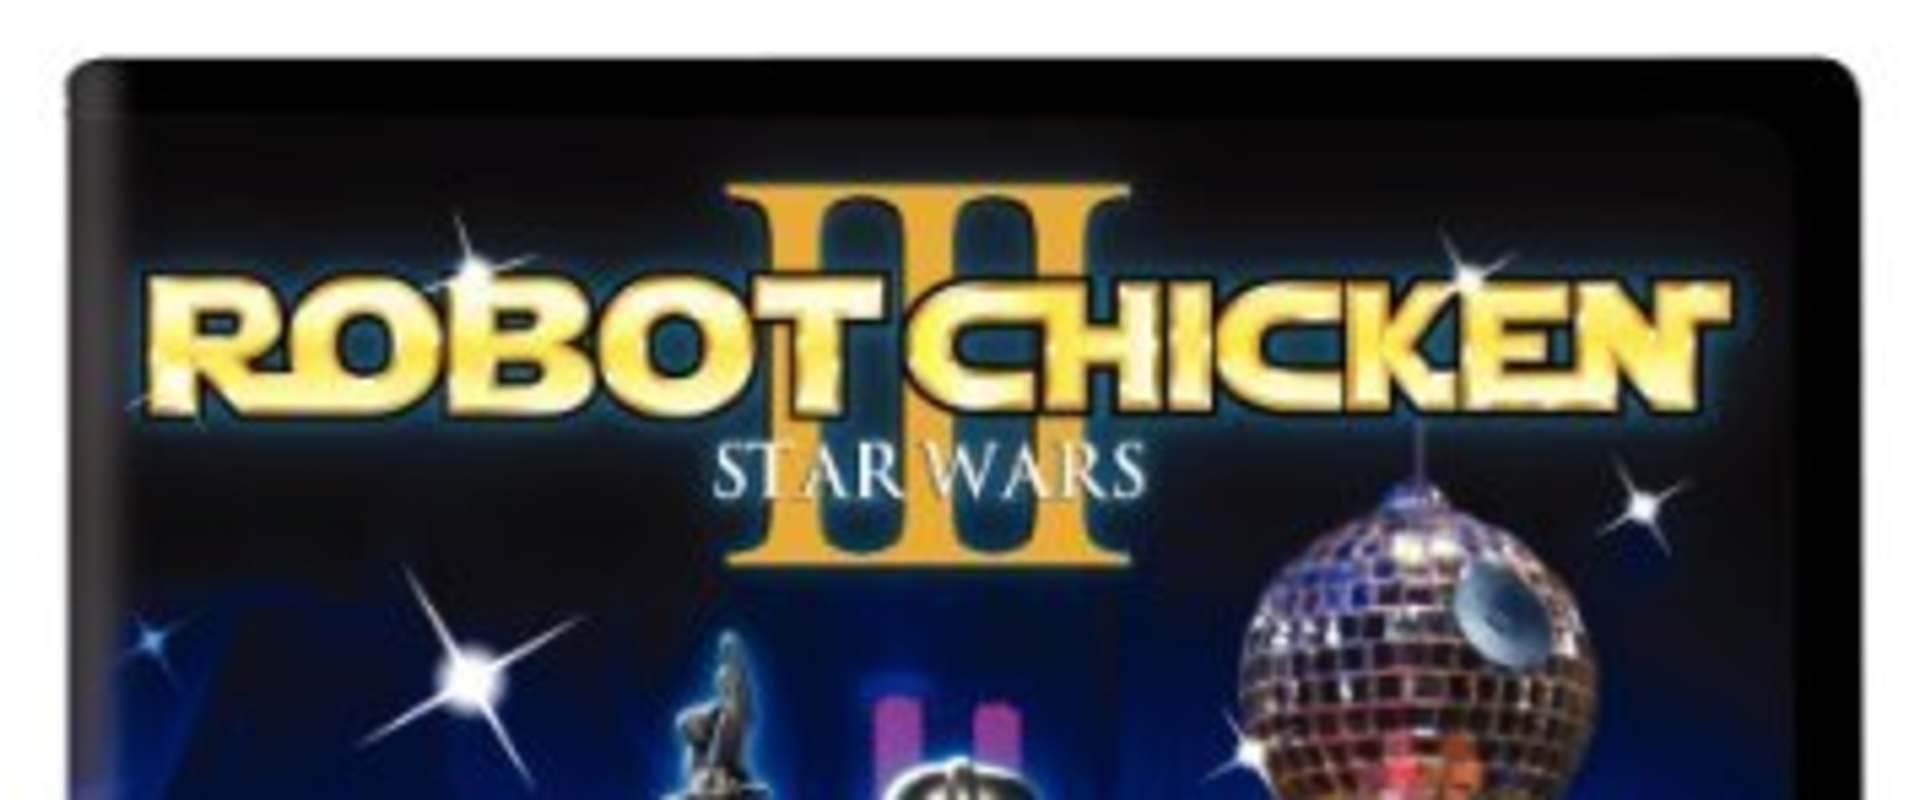 Robot Chicken: Star Wars background 1